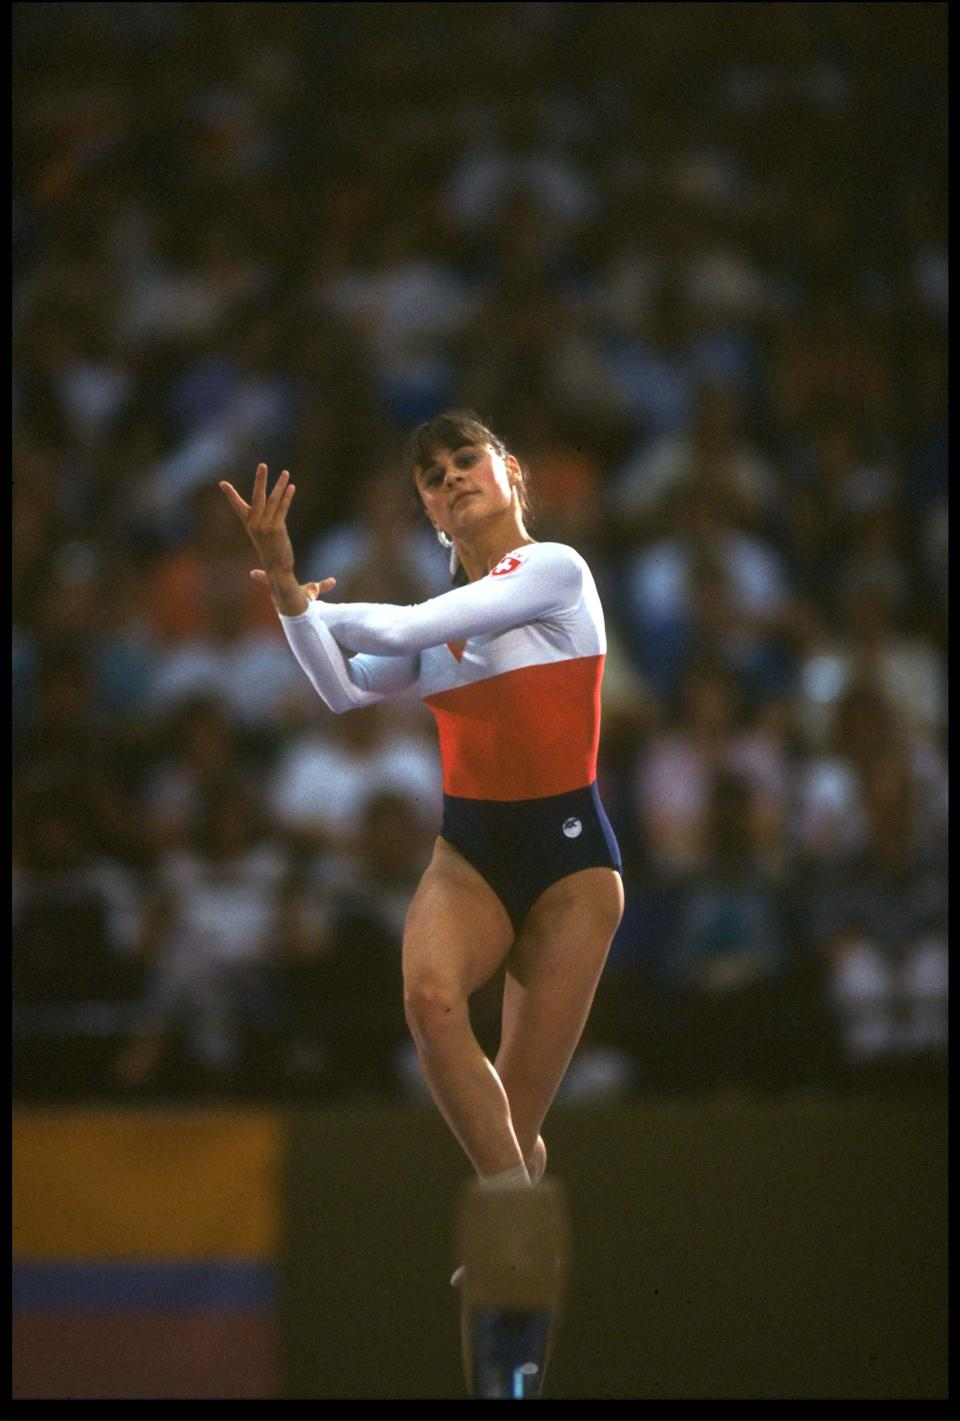 5 AUG 1984: ROMI KESSLER OF SWITZERLAND IN ACTION DURING HER ROUTINE ON THE BALANCE BEAM AT THE 1984 LOS ANGELES OLYMPICS. KESSLER FINISHED IN 6TH PLACE WITH A SCORE OF 19.35.